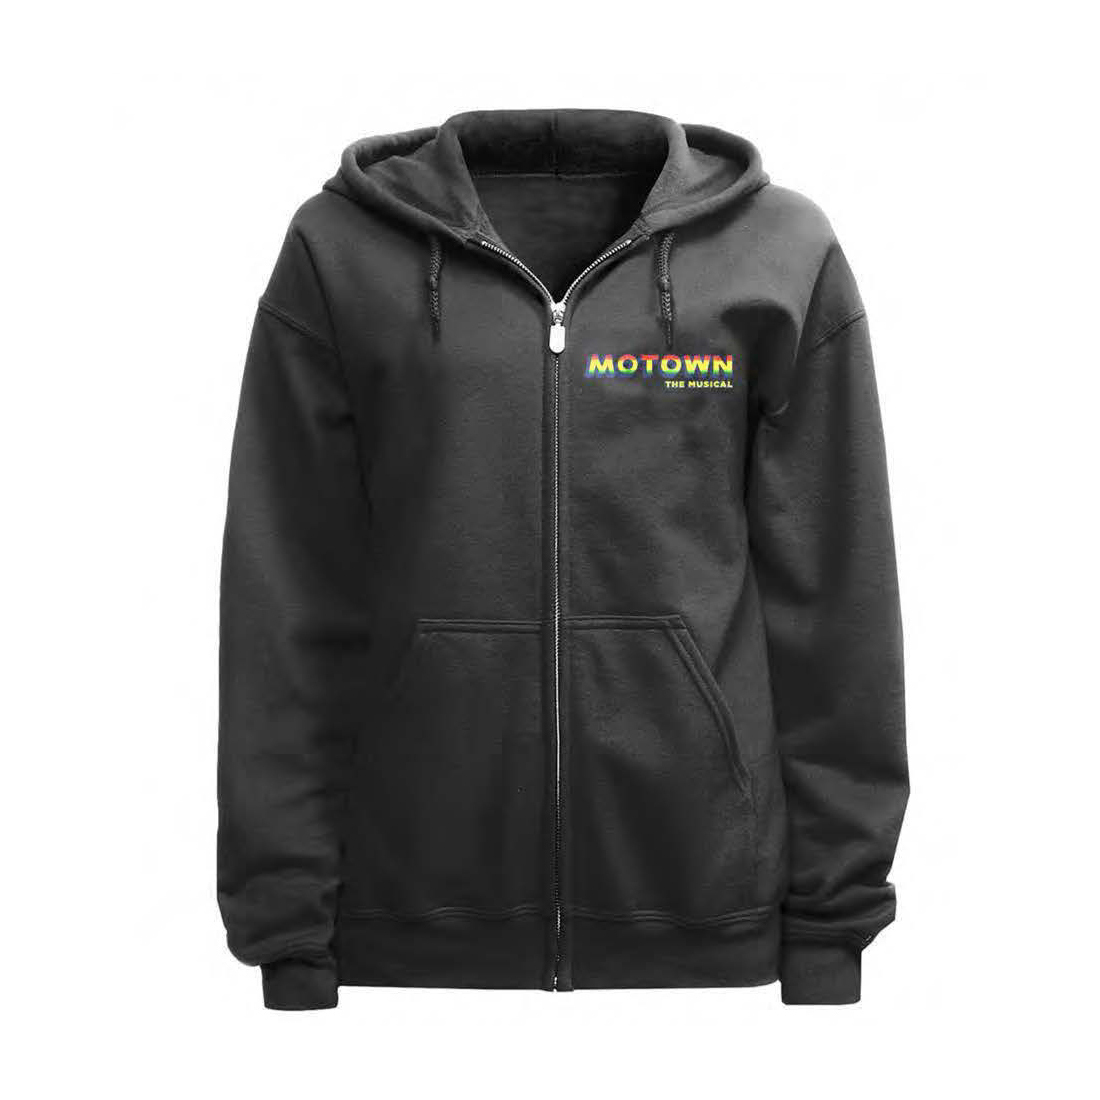 Motown Zip Up Embroidered Hoodie